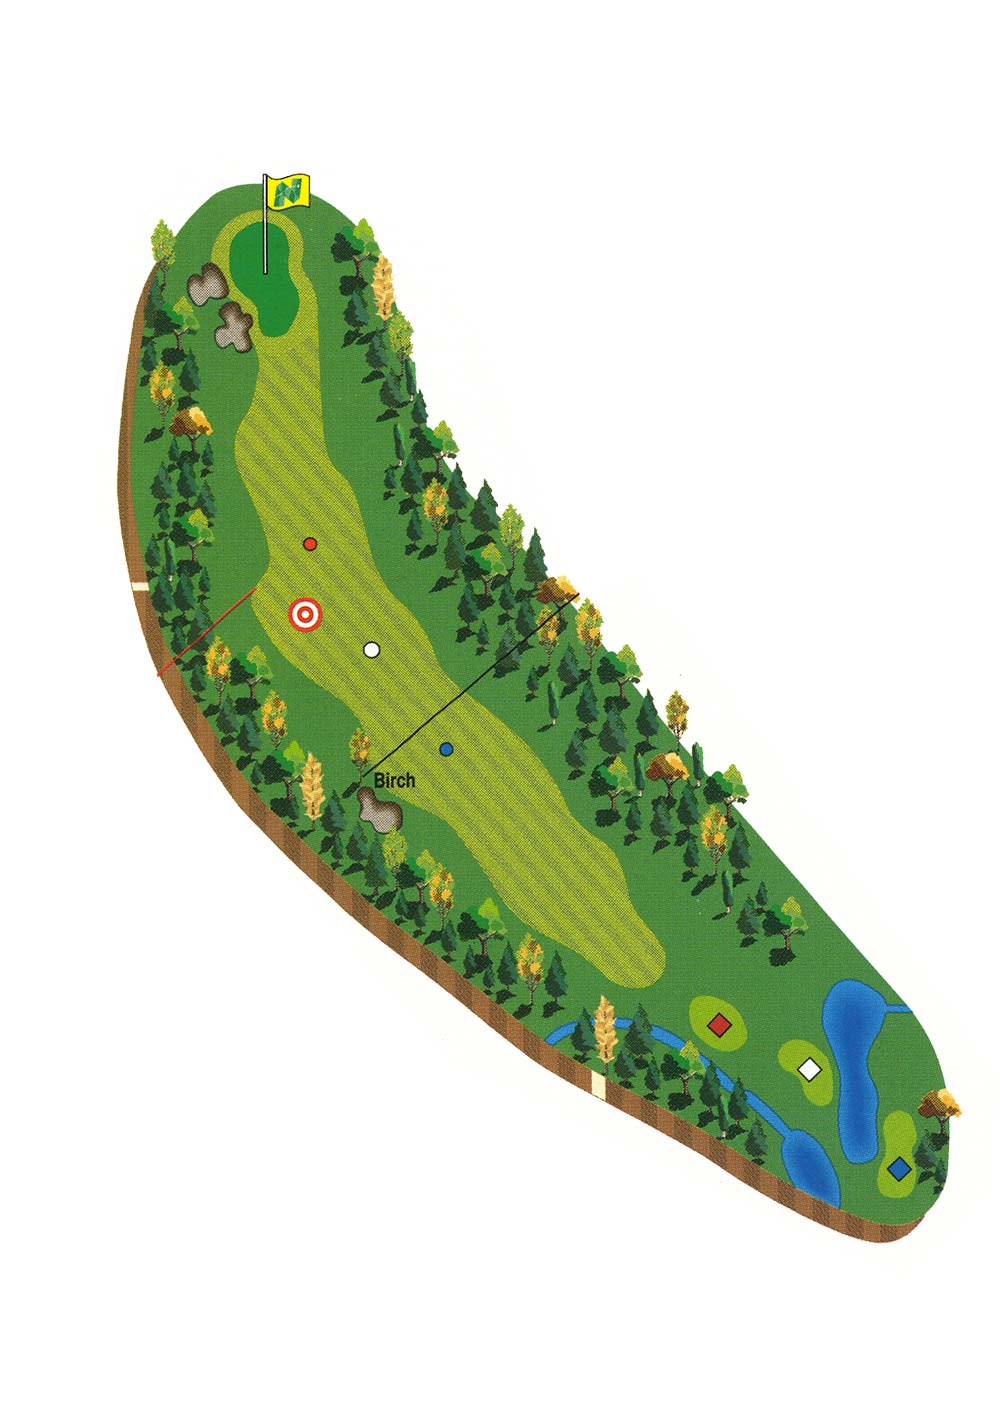 NS Course Description - Hole 13